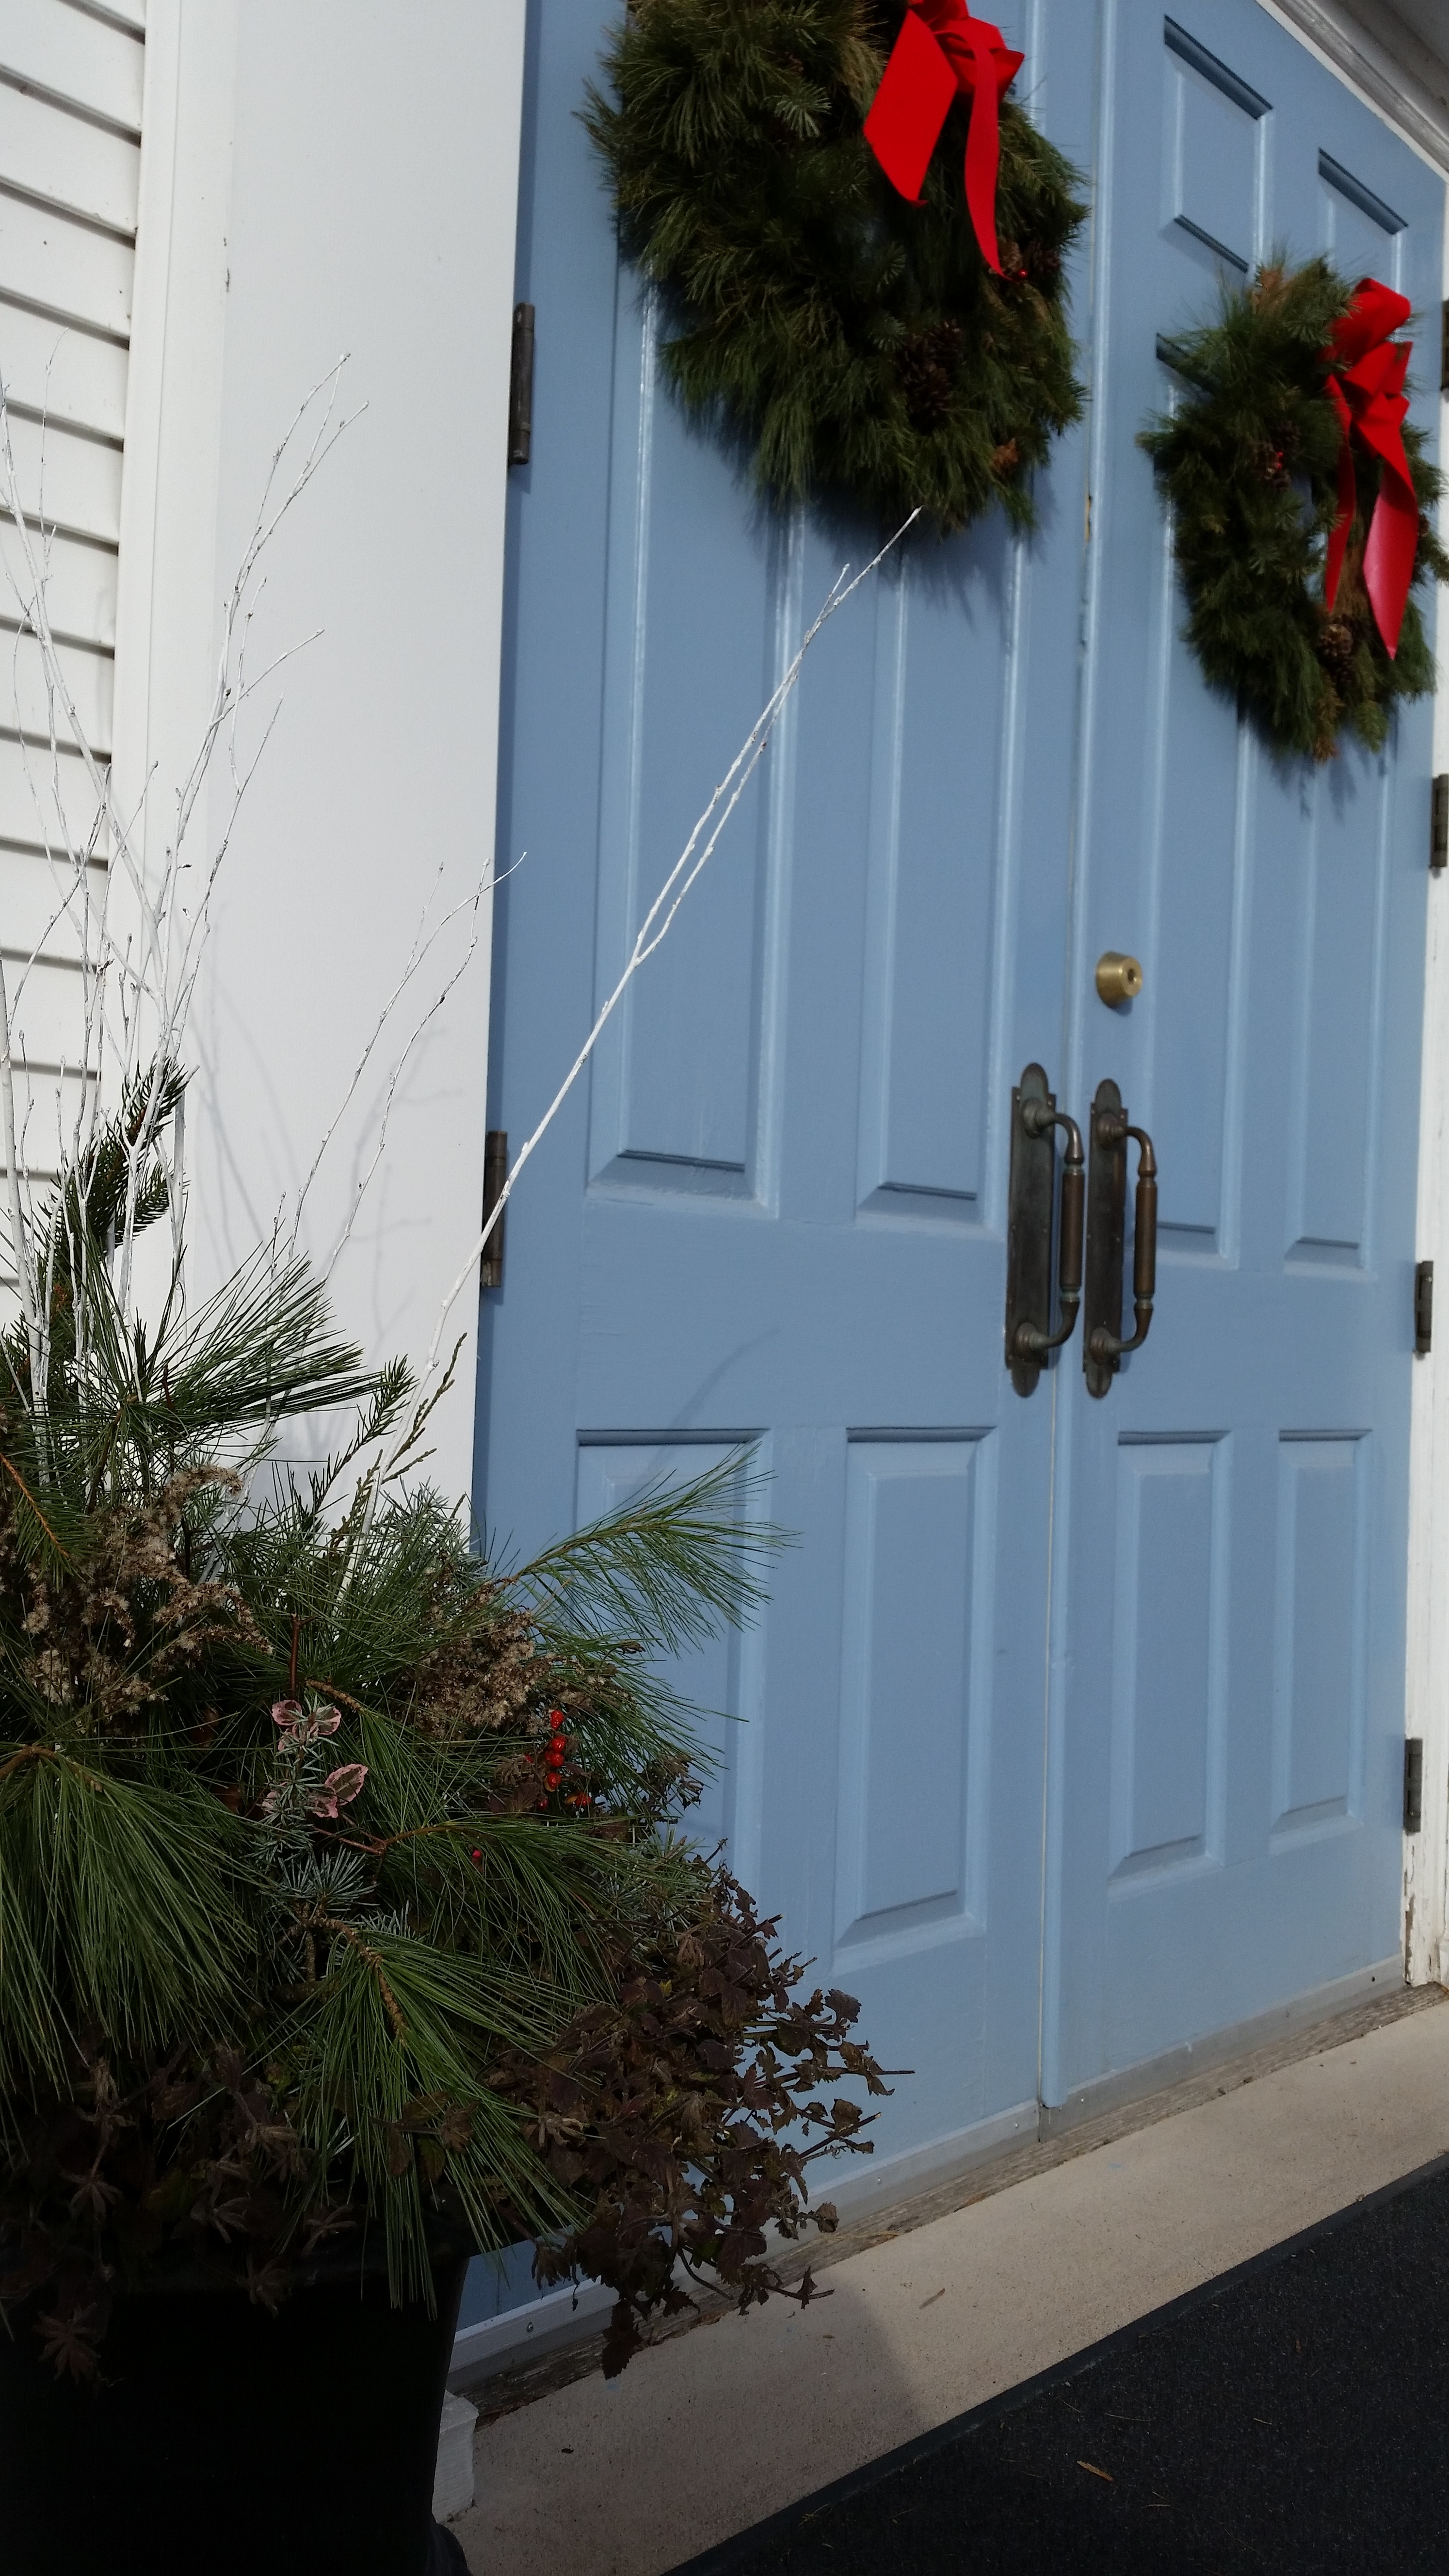 ChristmasDoors2015